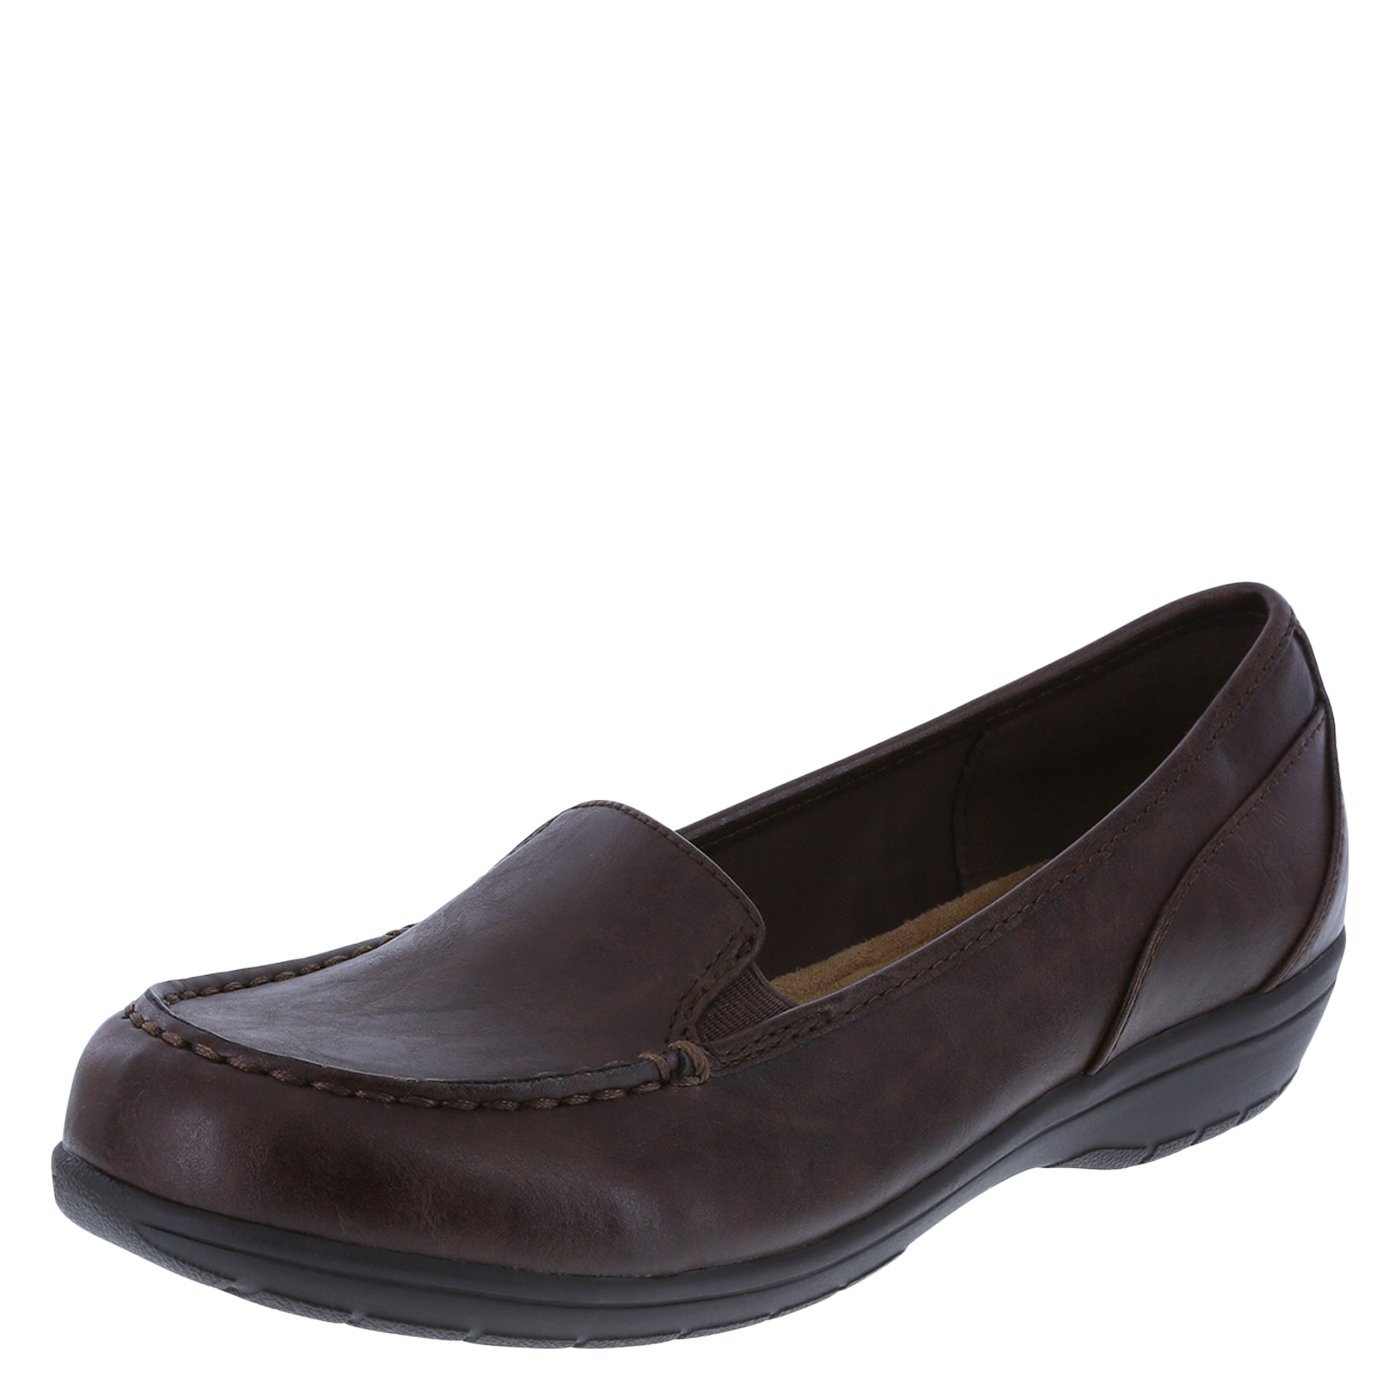 Comfort Plus by Predictions Women's Brown Women's Colby Loafer 7 Wide by Predictions (Image #1)